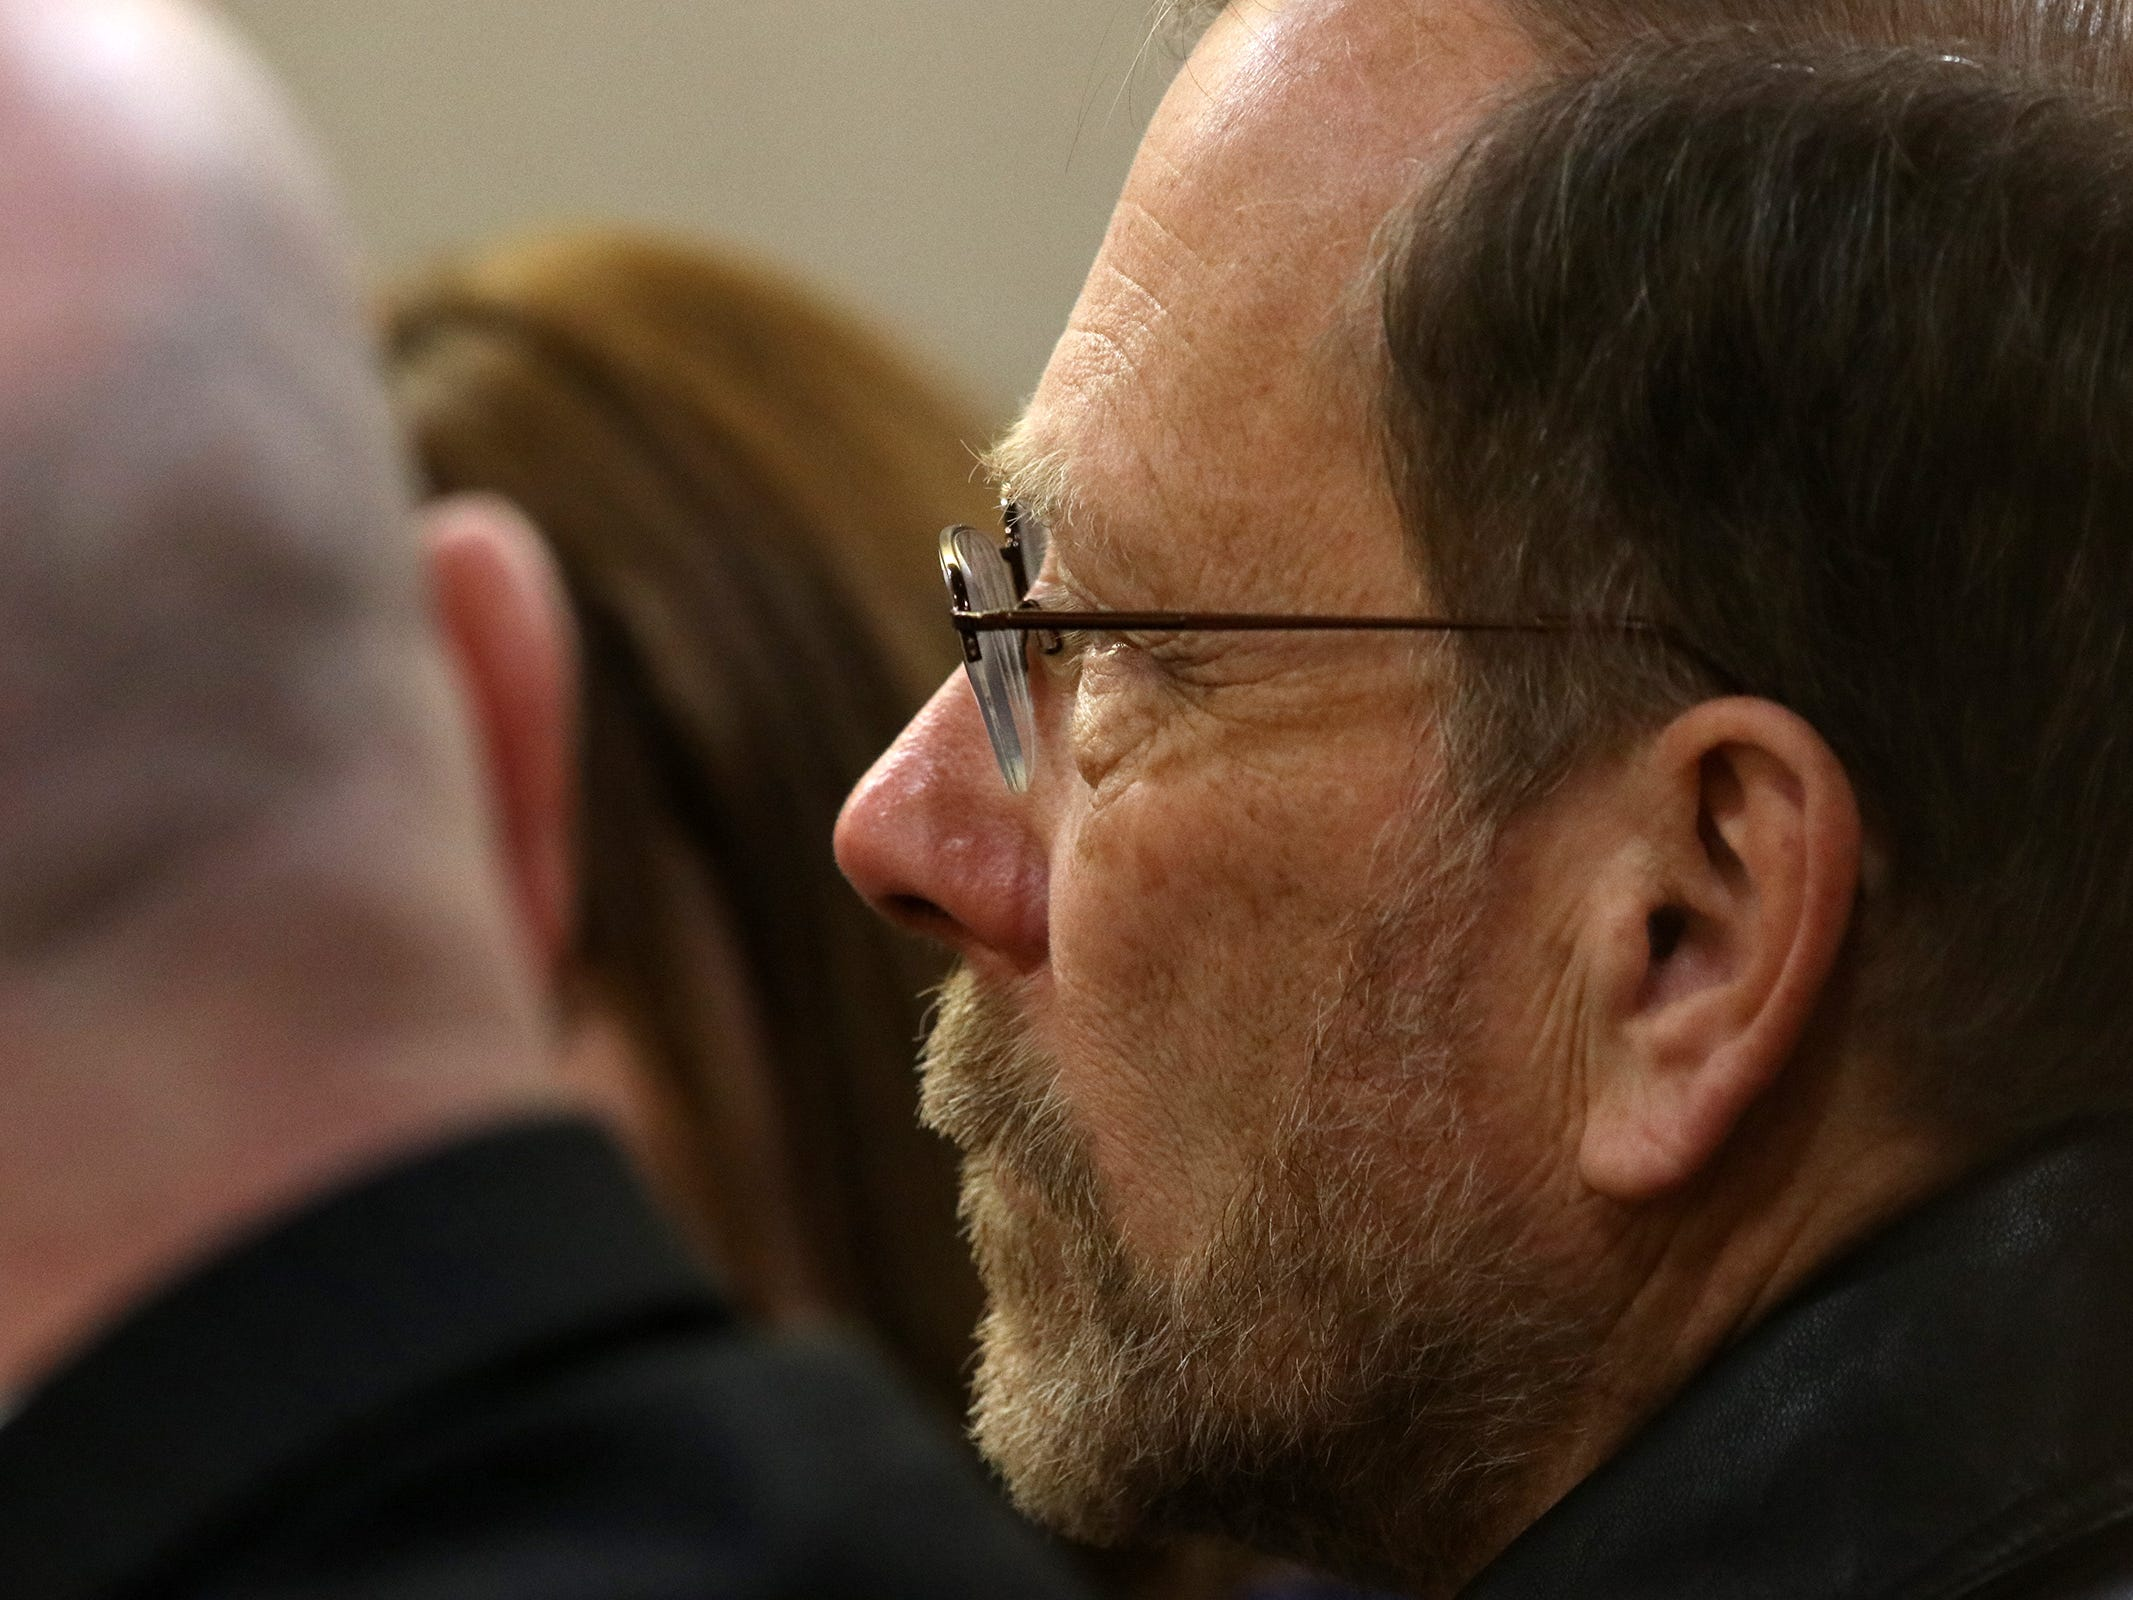 Michael Stern, father of Sarah Stern, sits in the courtroom as Liam McAtasney, who is charged with the murder of former high school classmate, Sarah Stern, appears for the first day of trial before Superior Court Judge Richard W. English at the Monmouth County Courthouse in Freehold, NJ Wednesday January 23, 2019.